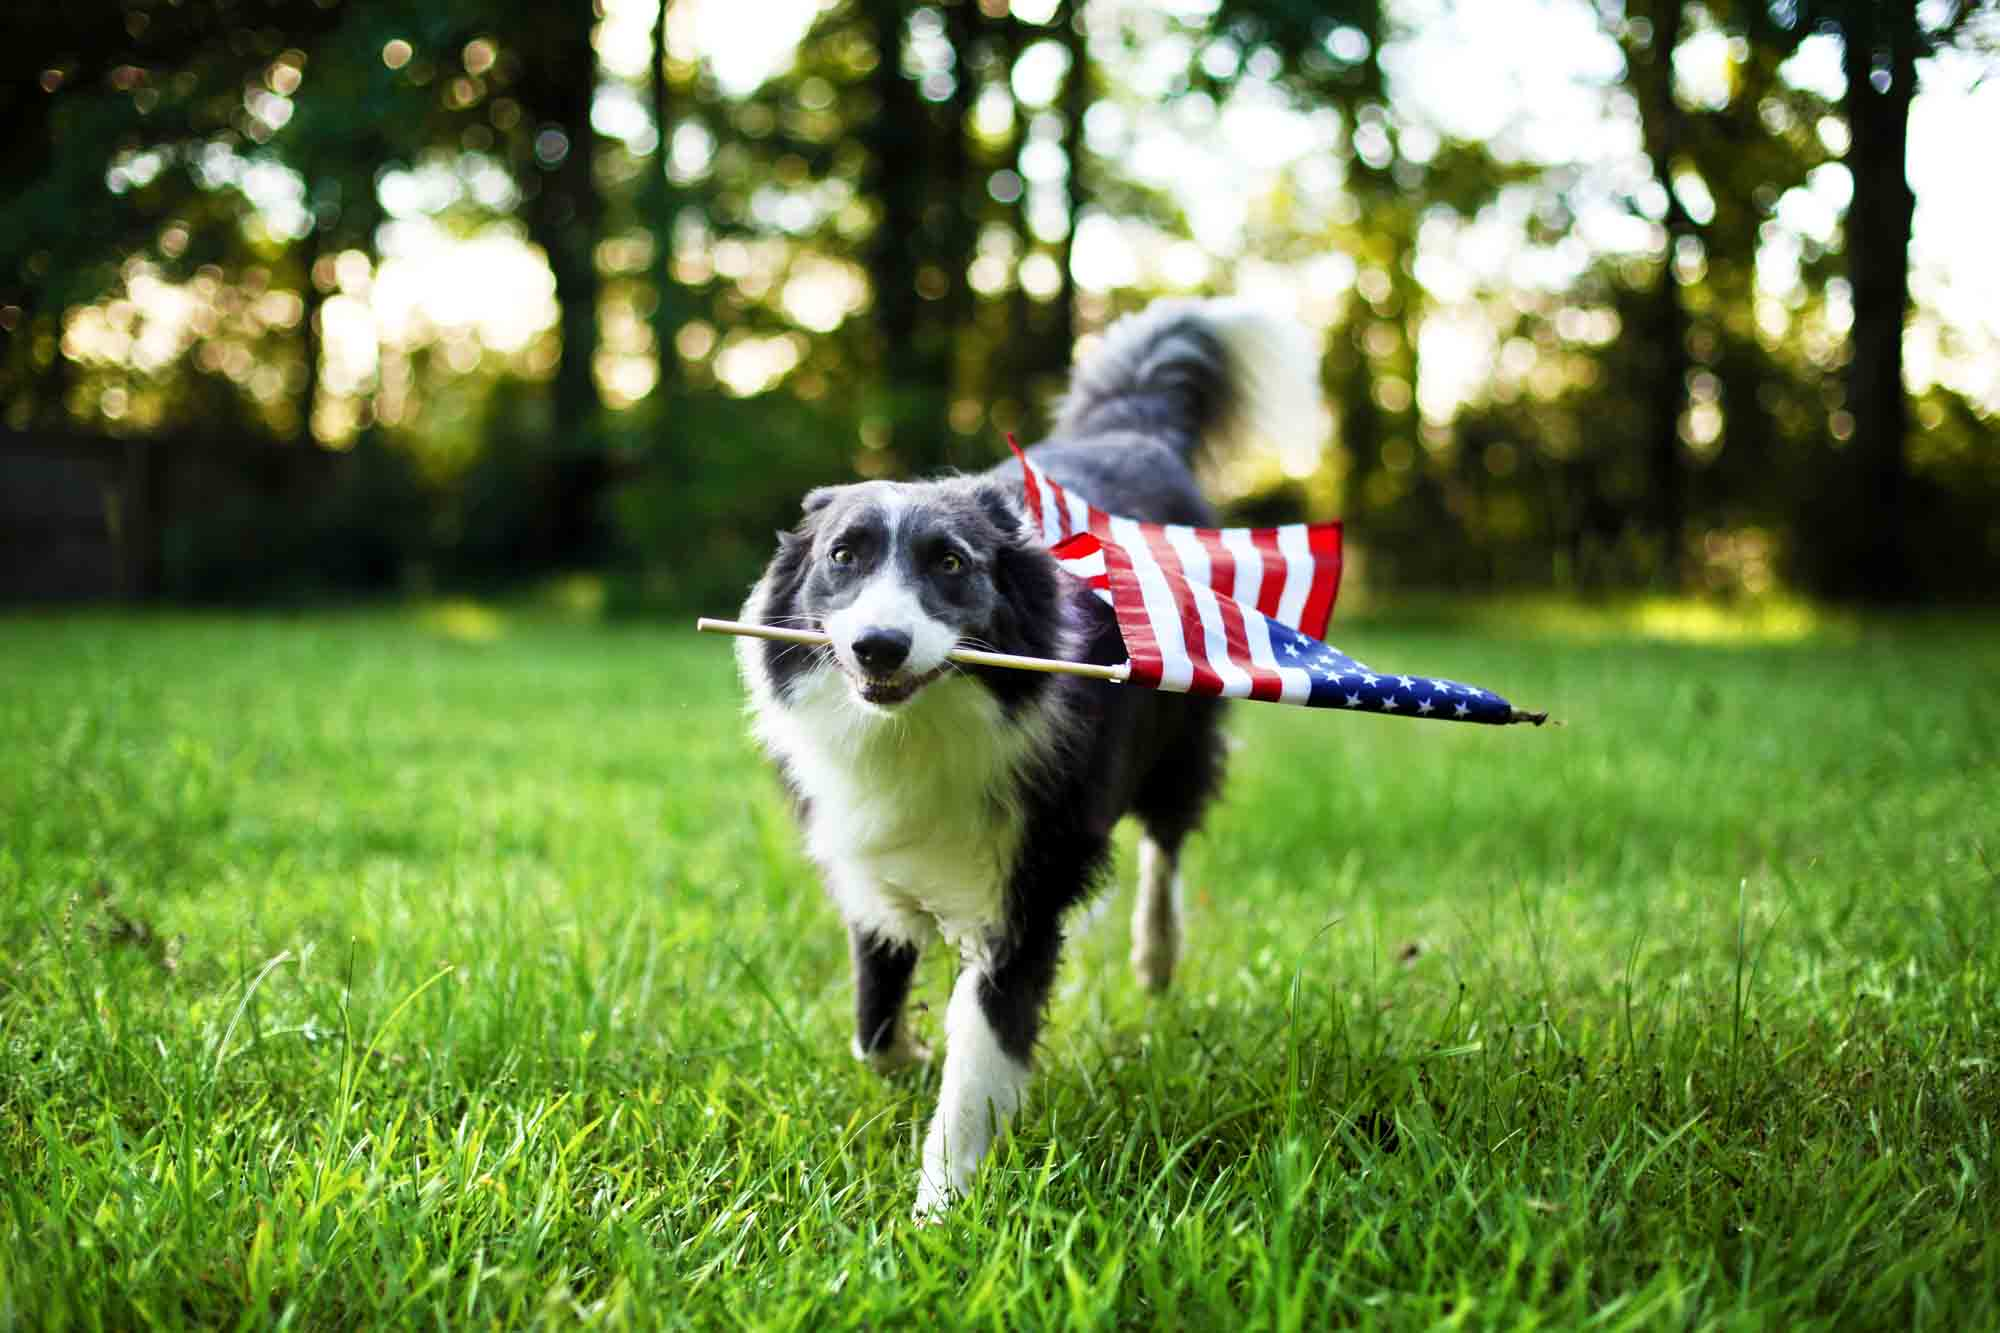 Pet groomers san diego pet groomer near me furry friends dog and pet groomers san diego pet groomer near me furry friends dog and cat grooming solutioingenieria Image collections